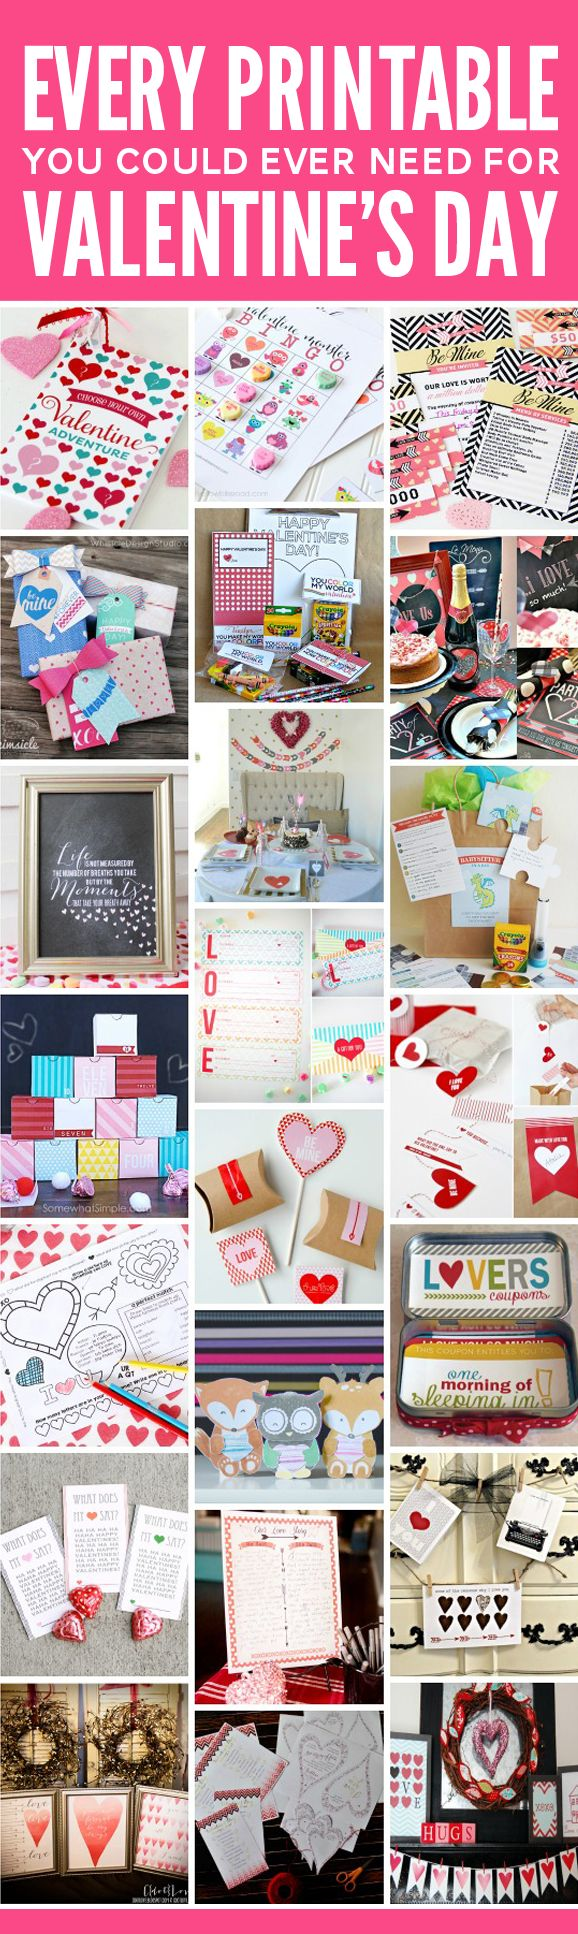 "I've just printed off coloring placemats for my kiddos, the ""Choose Your Own Valentine Adventure"" booklet and love coupons for my hubby, and a gift card holder for the teachers. And that's just part of 4 of the 22 printable packs included! I'm pretty sure it's going to take me SEVERAL Valentine's Days to get to use all of these goodies! At less than thirteen cents per page, you NEED to snag this V-day deal!"